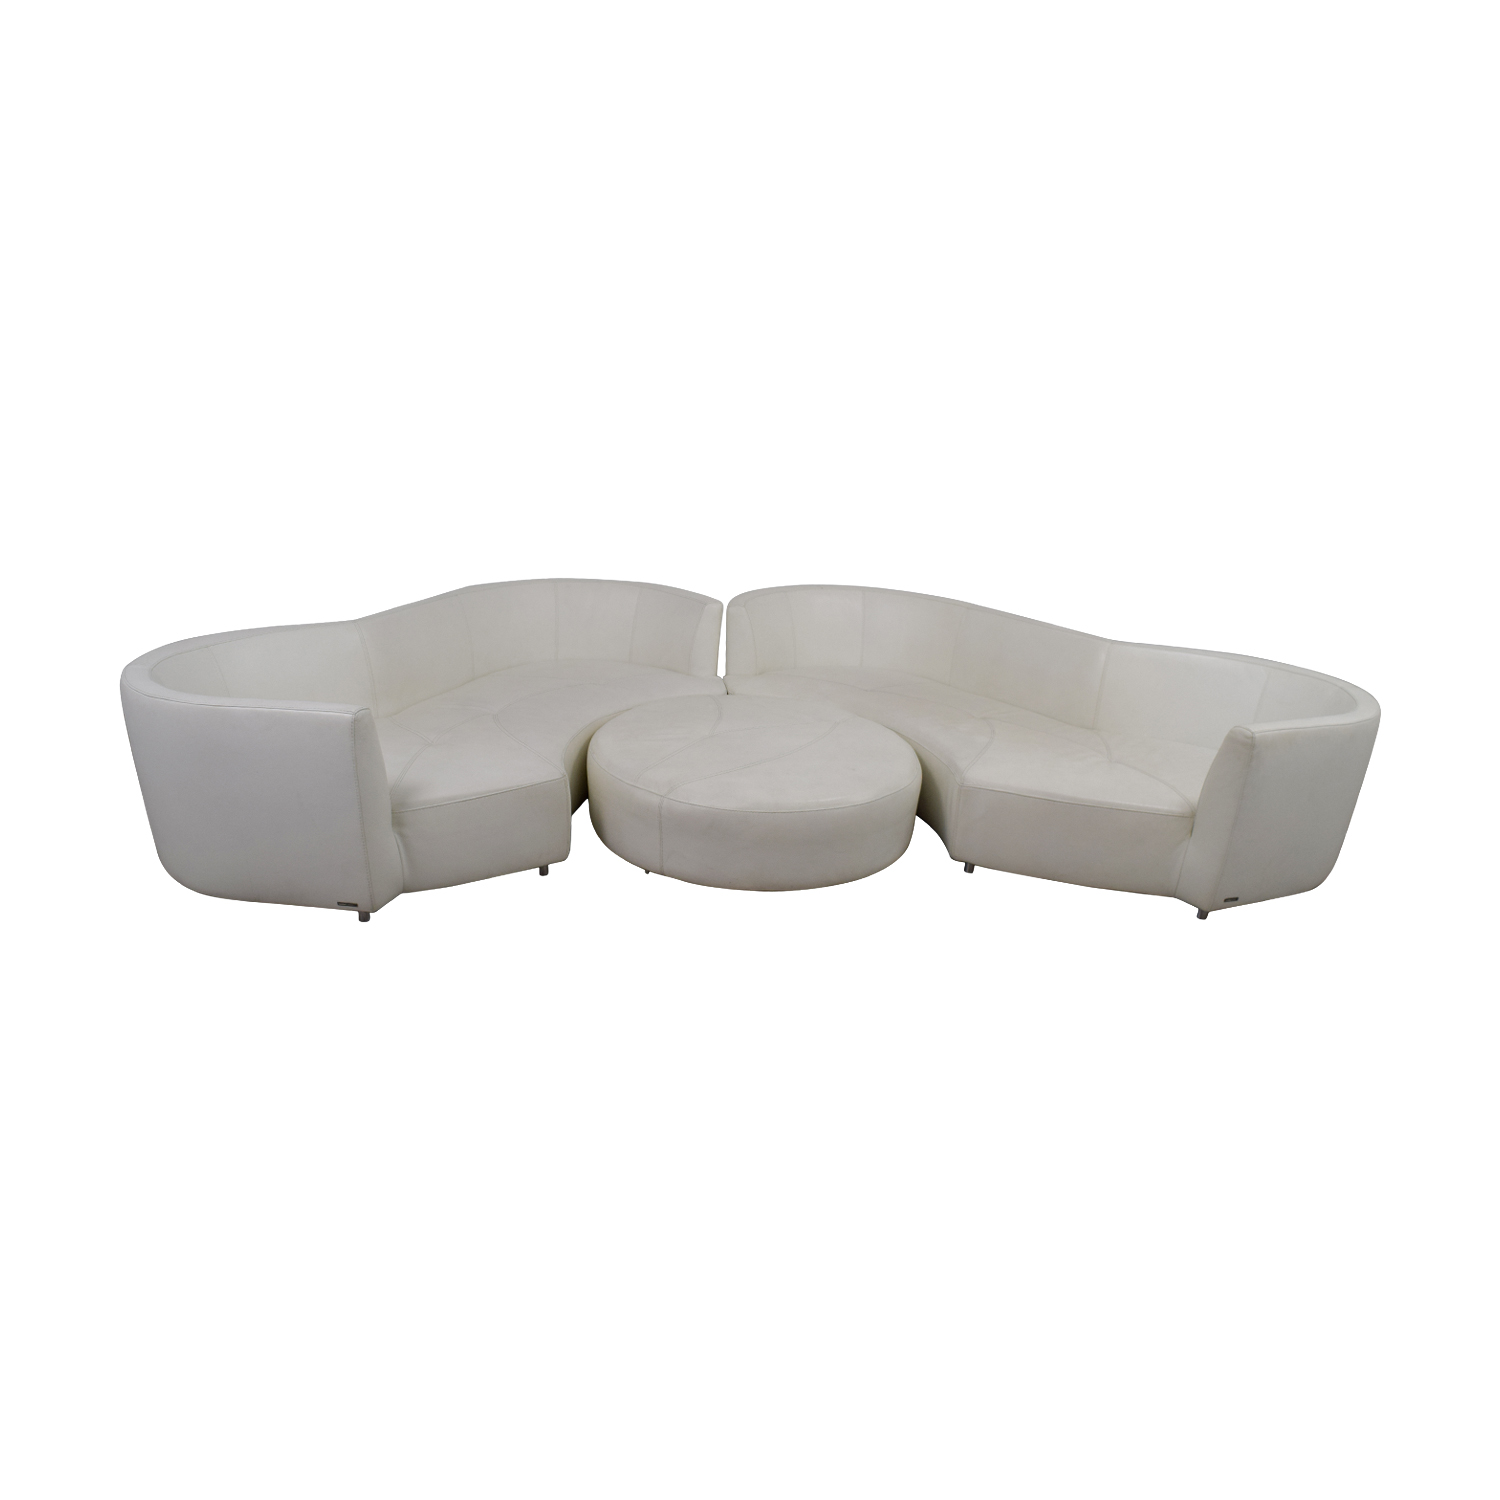 Roche Bobois White Digital Curved Three-Cushion Sofas with Ottoman sale